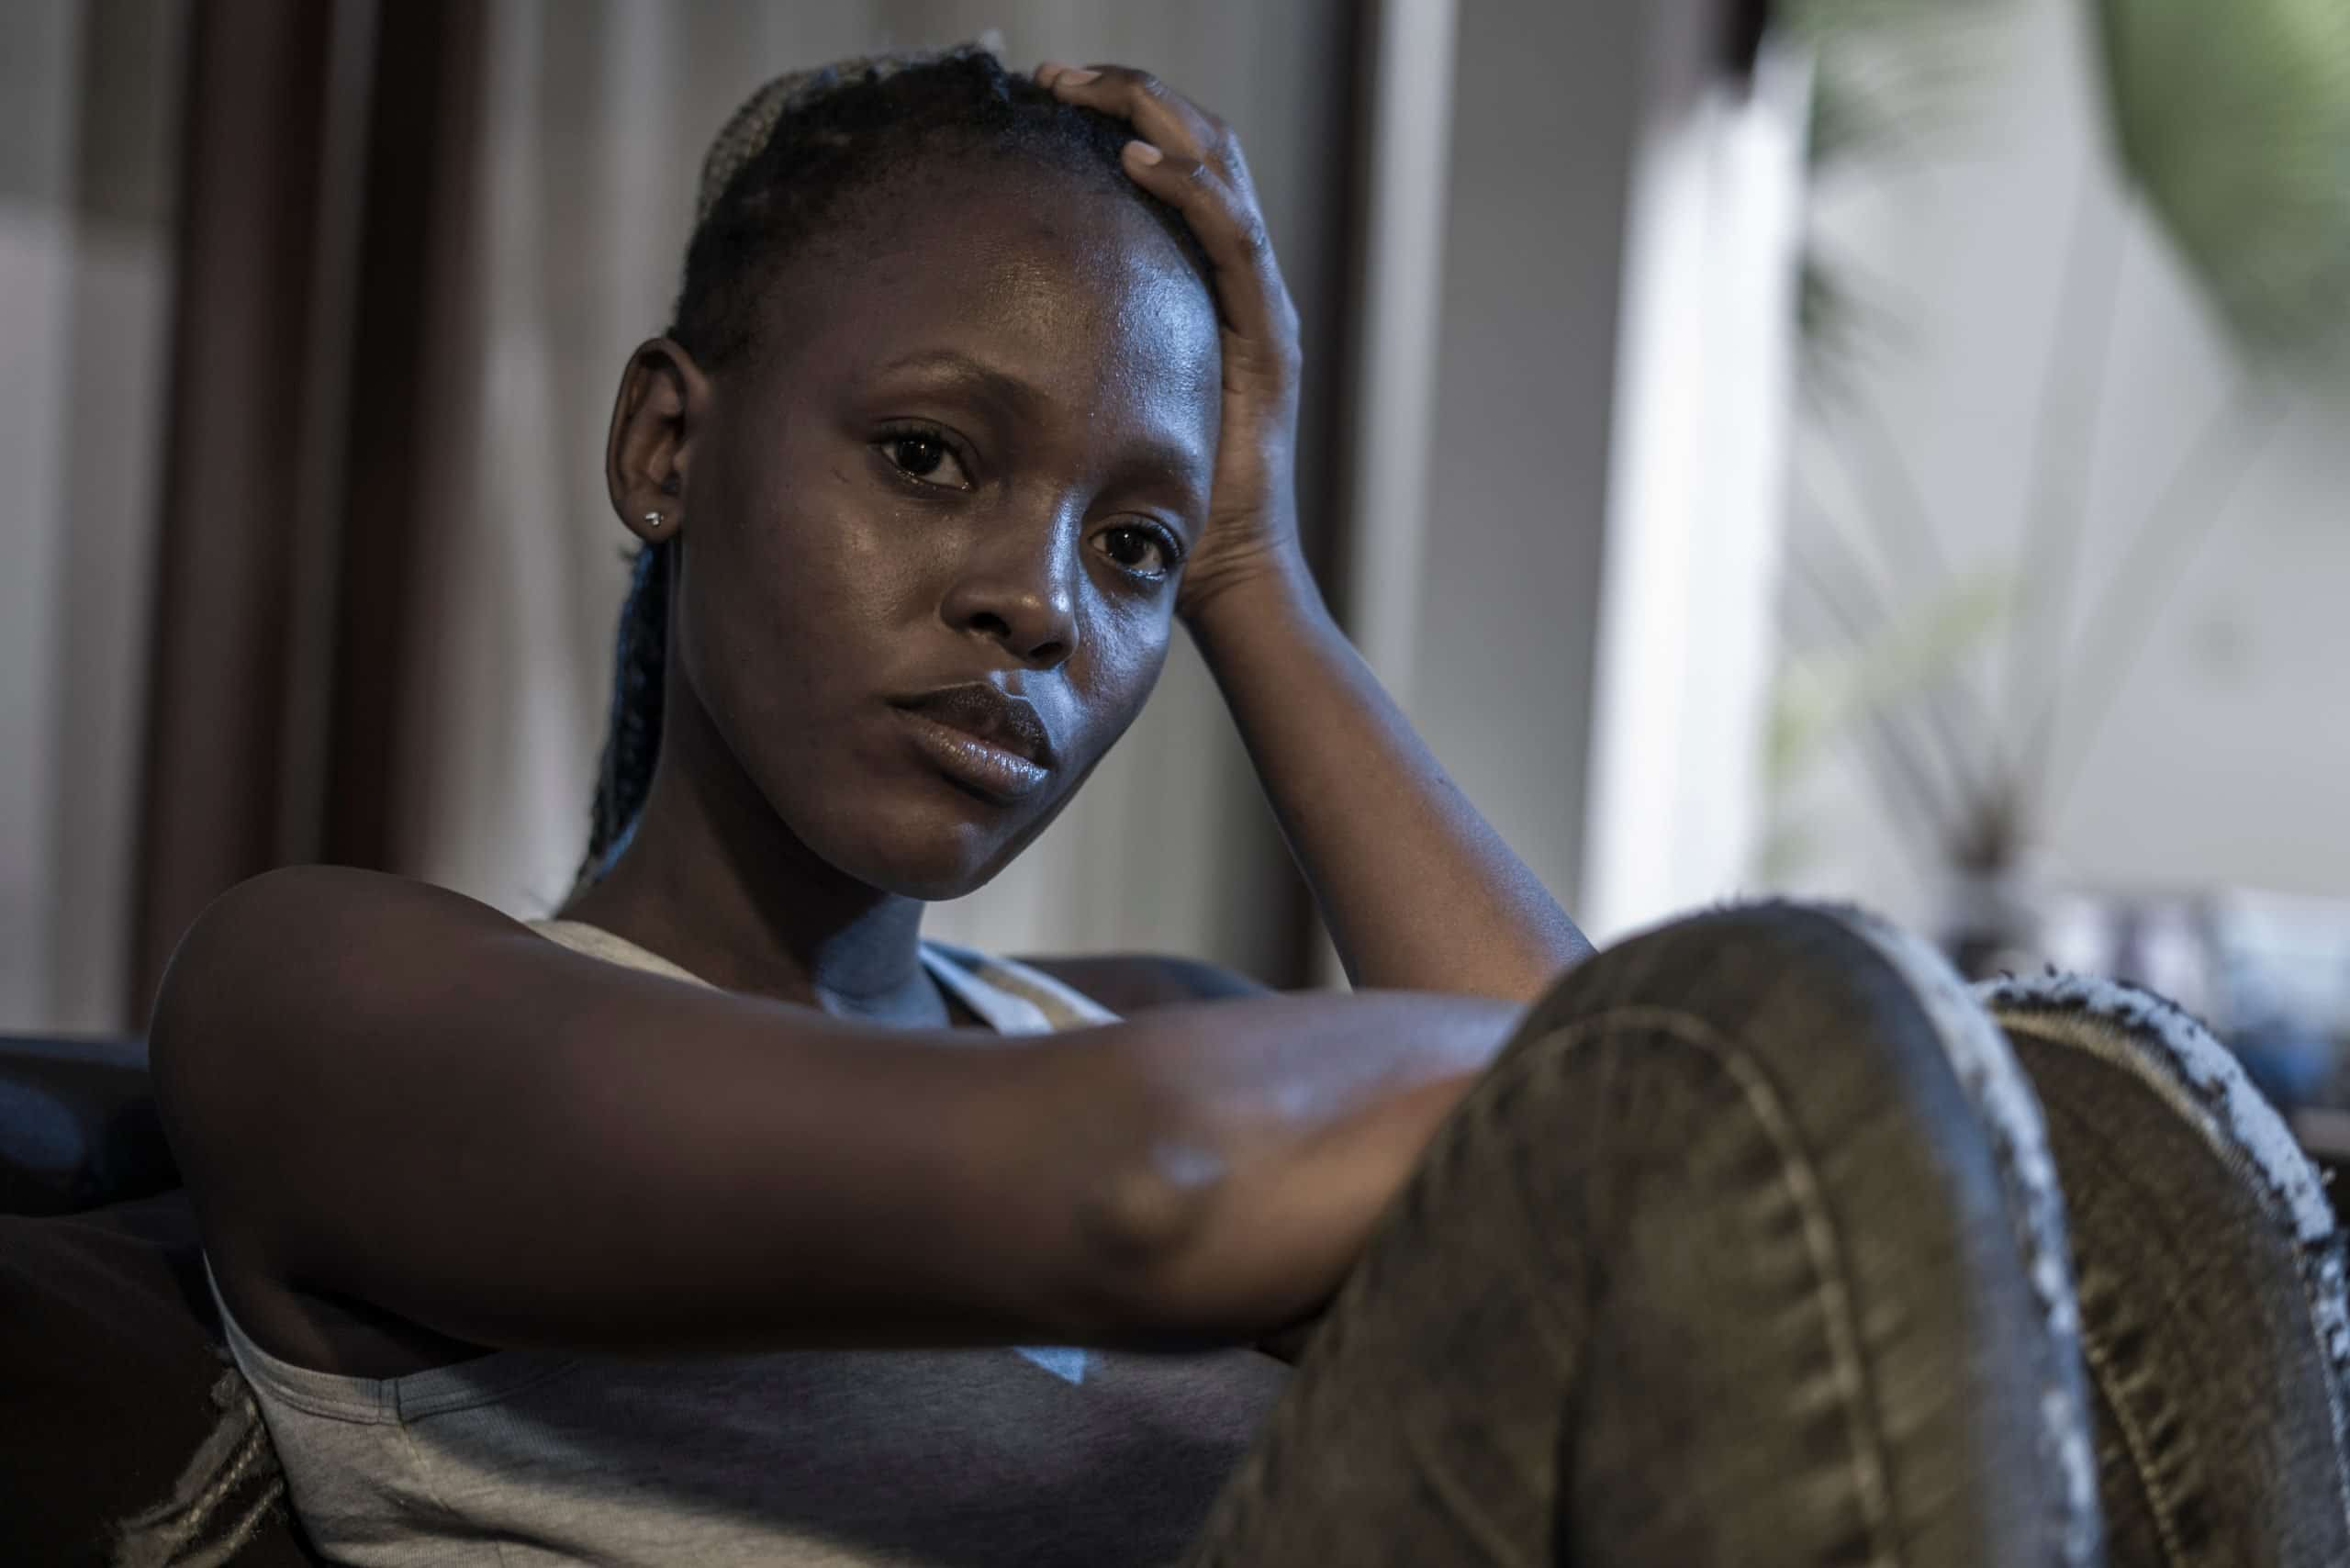 Afro Canadian Woman Sitting Depressed